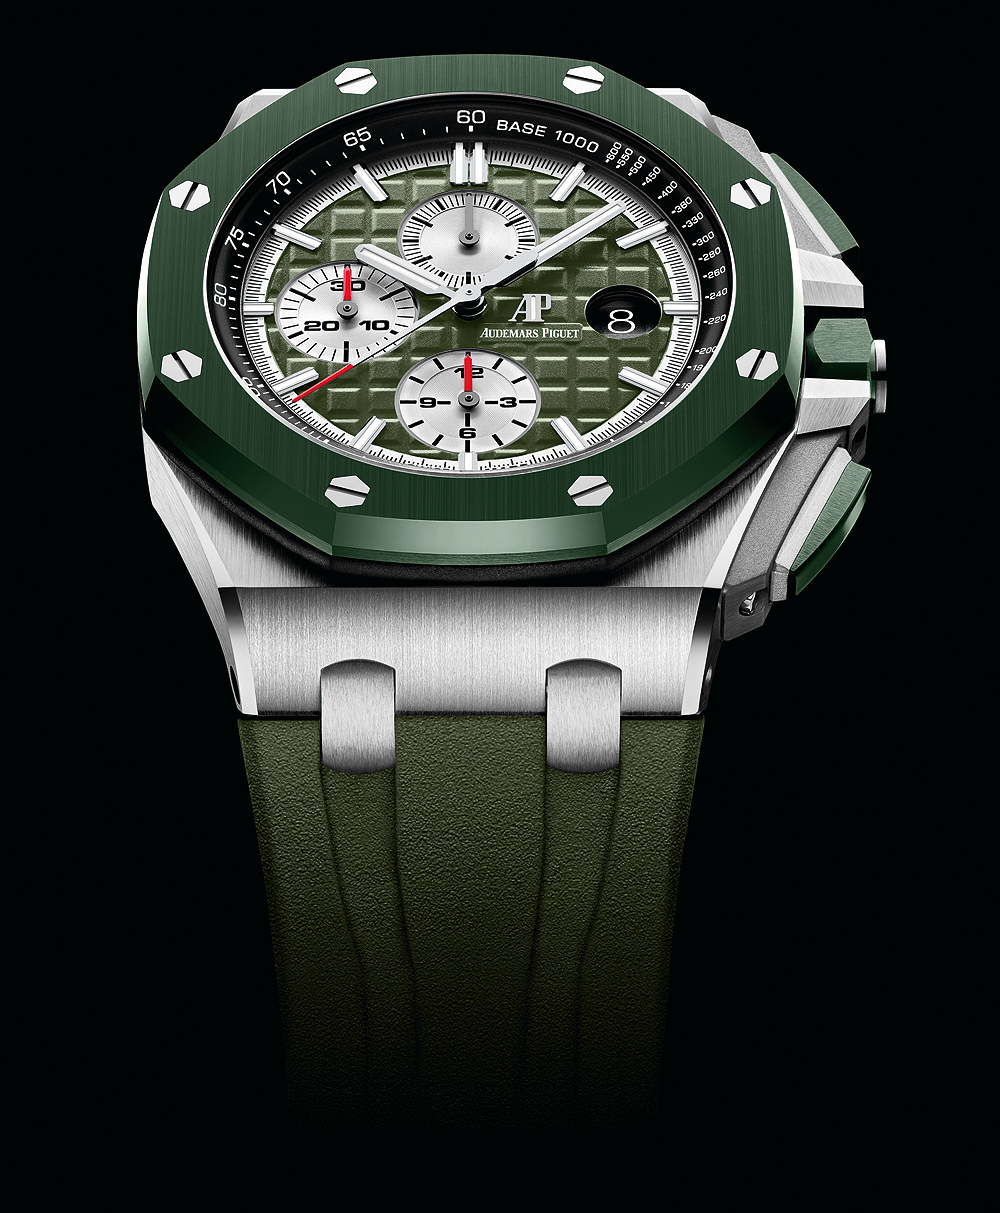 Audemars Piguet Royal Oak Offshore Selfwinding Chronograph - Green camo